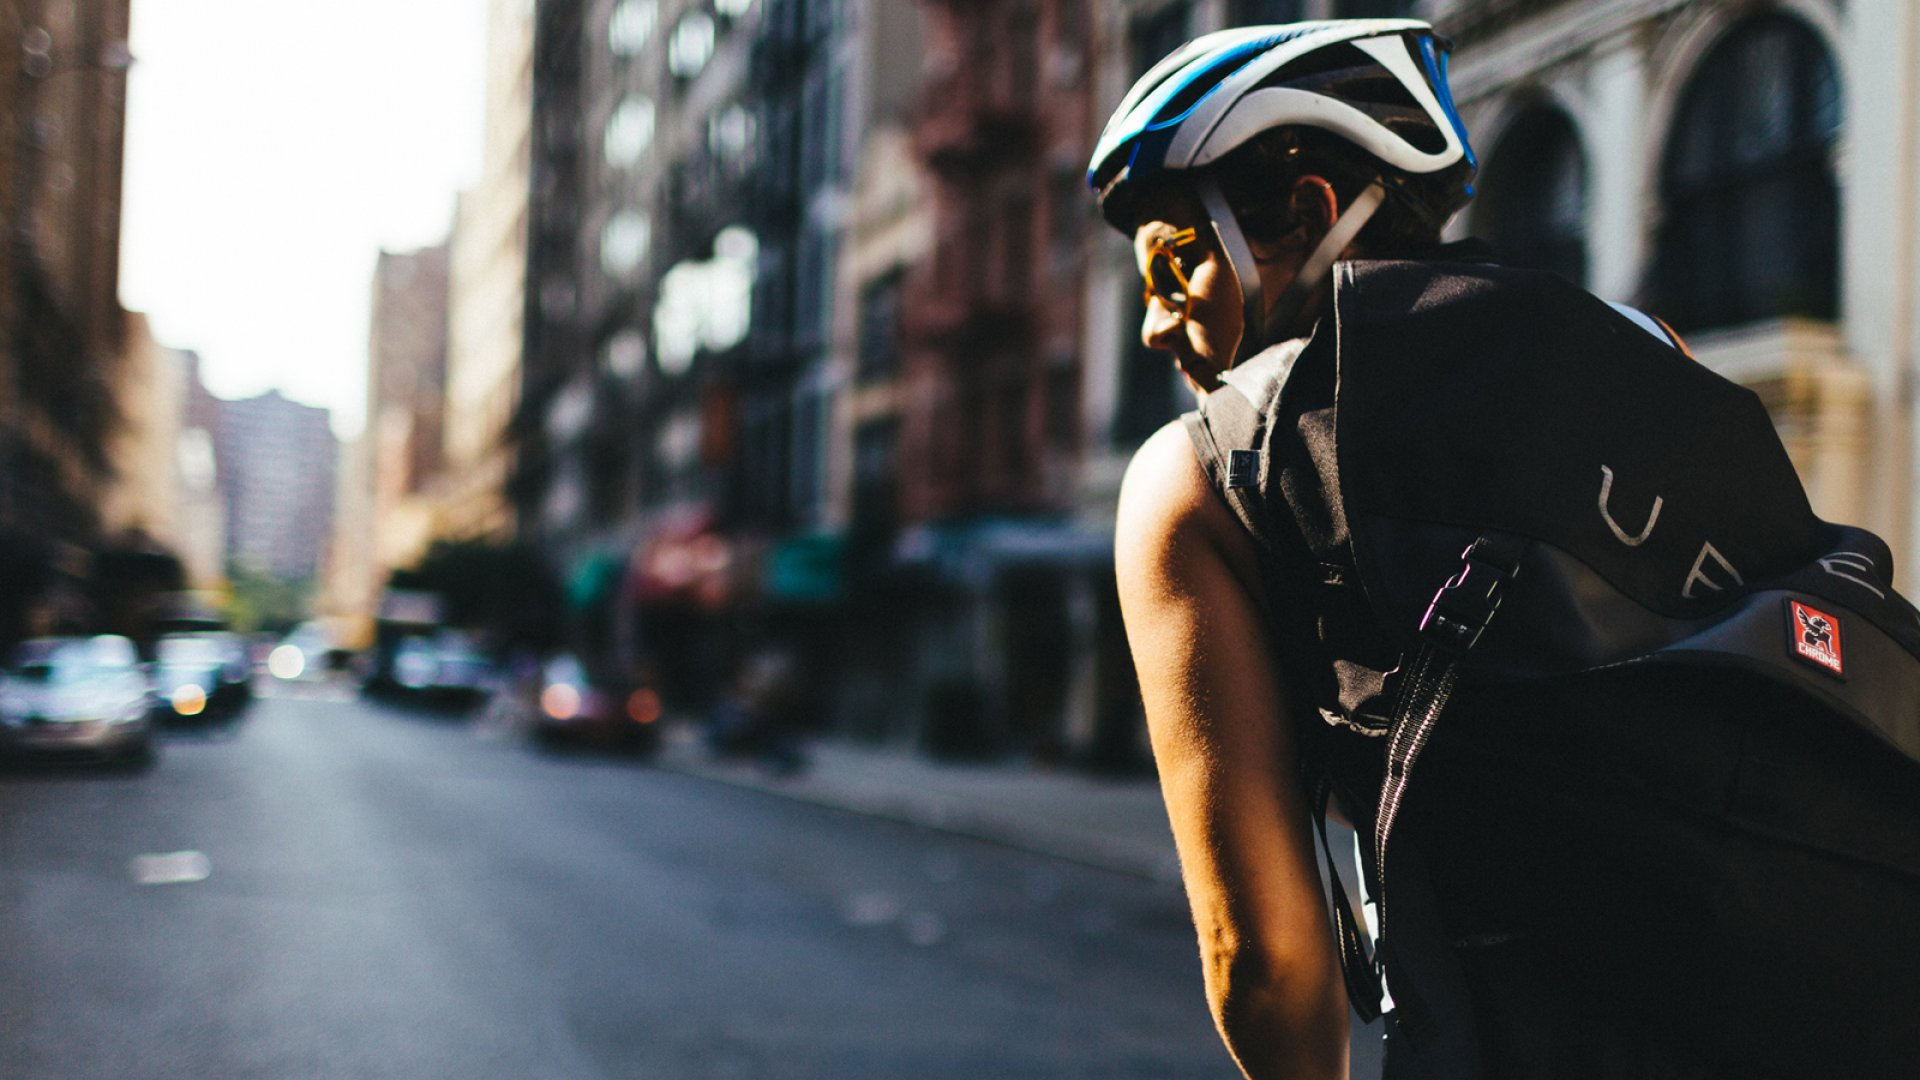 UberRush uses bicycle messengers in New York City, drivers in cars in Chicago, and both in San Francisco, to deliver meals and packages.